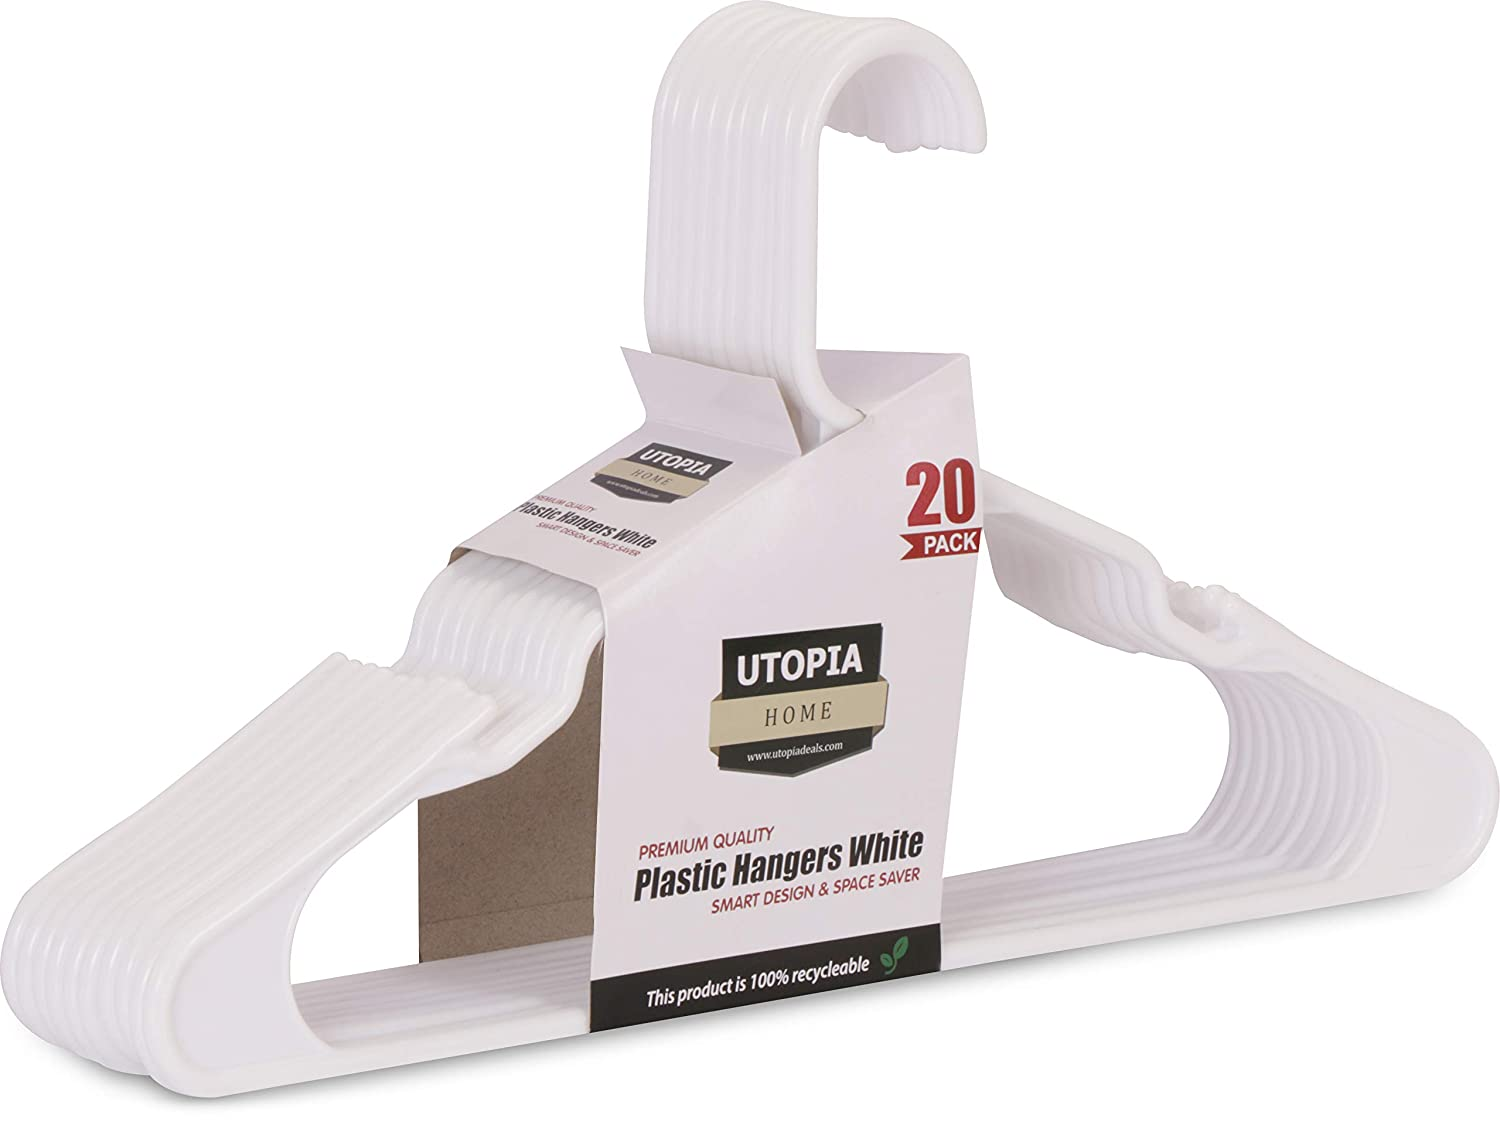 Standard Plastic Hangers - White - Pack of 20 - by Utopia Home UH0062